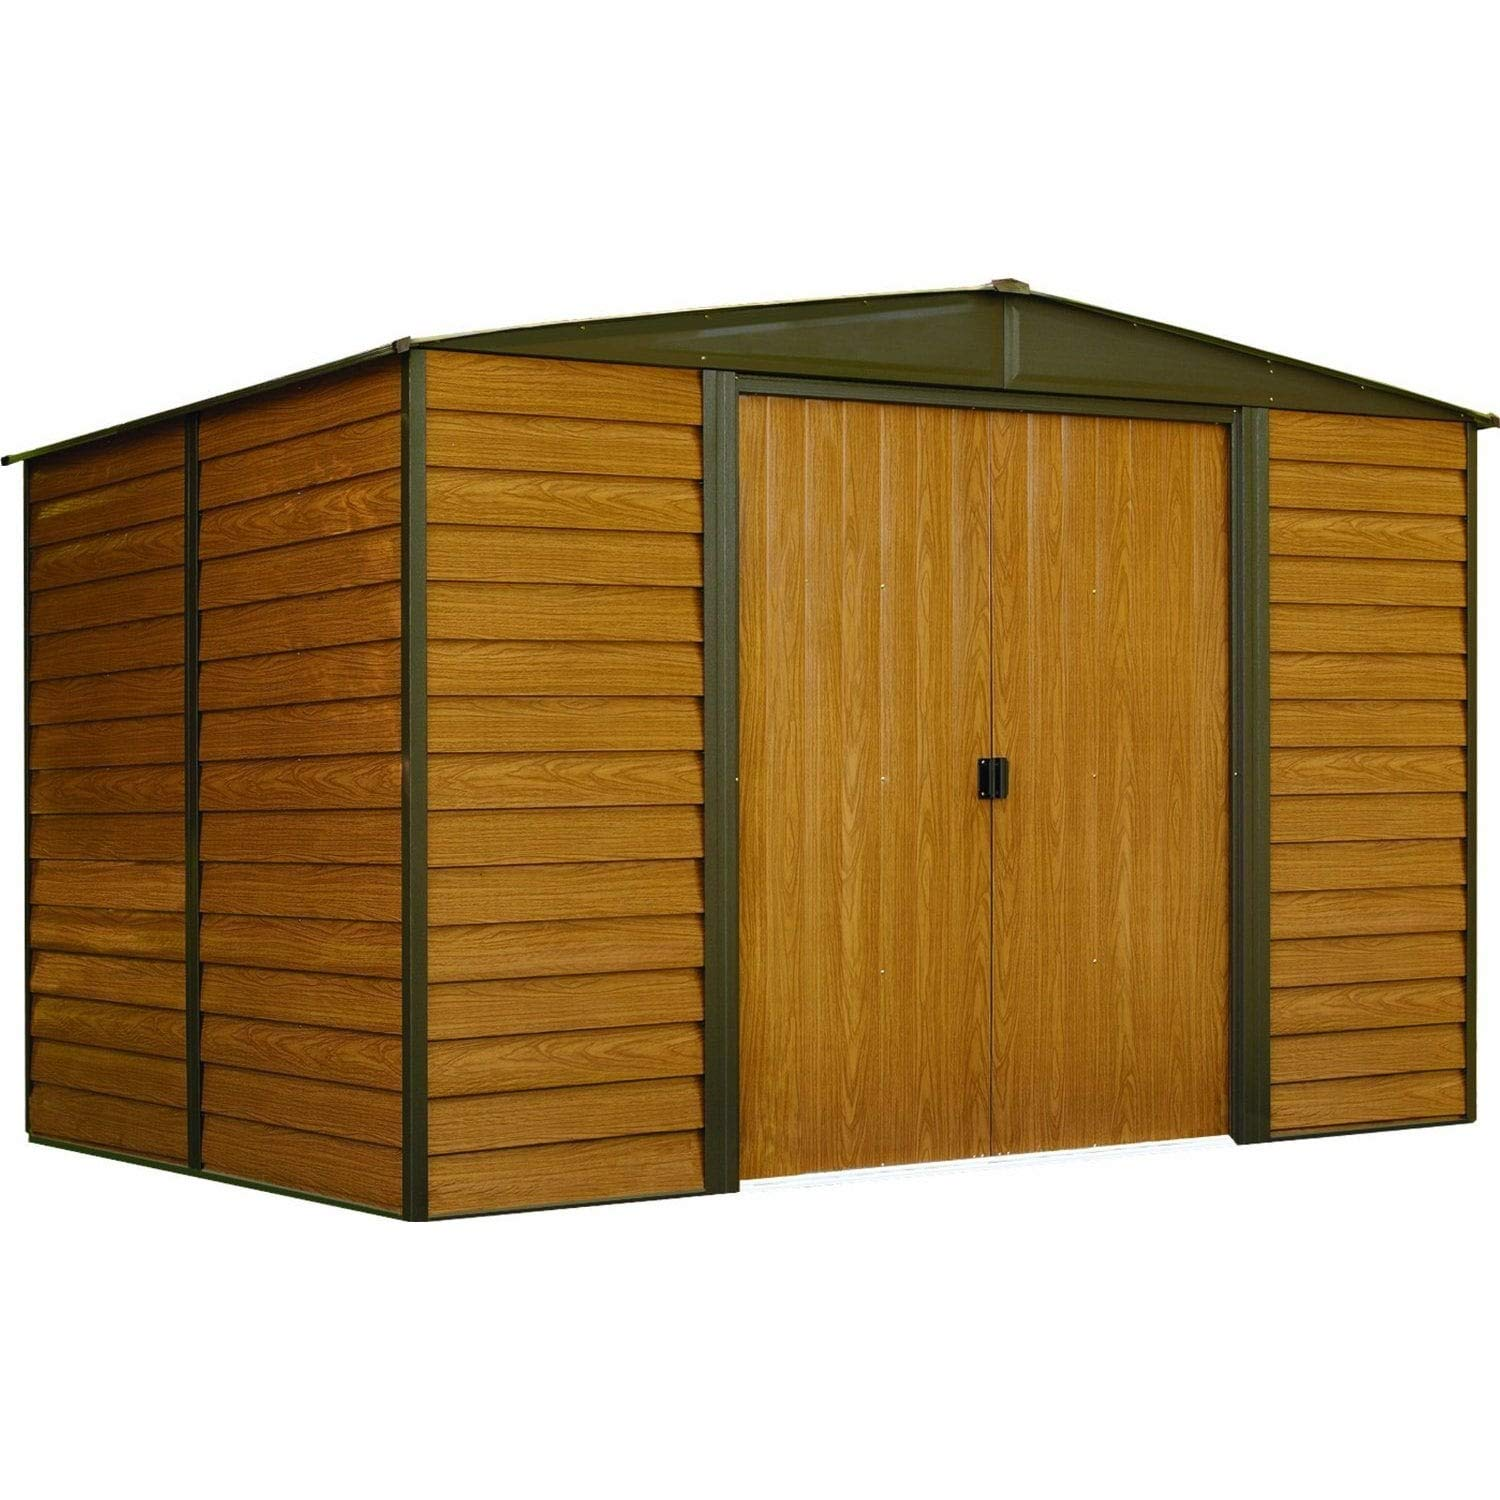 10 X 8 Ft. Steel Storage Shed Coffee/Woodgrain Brown